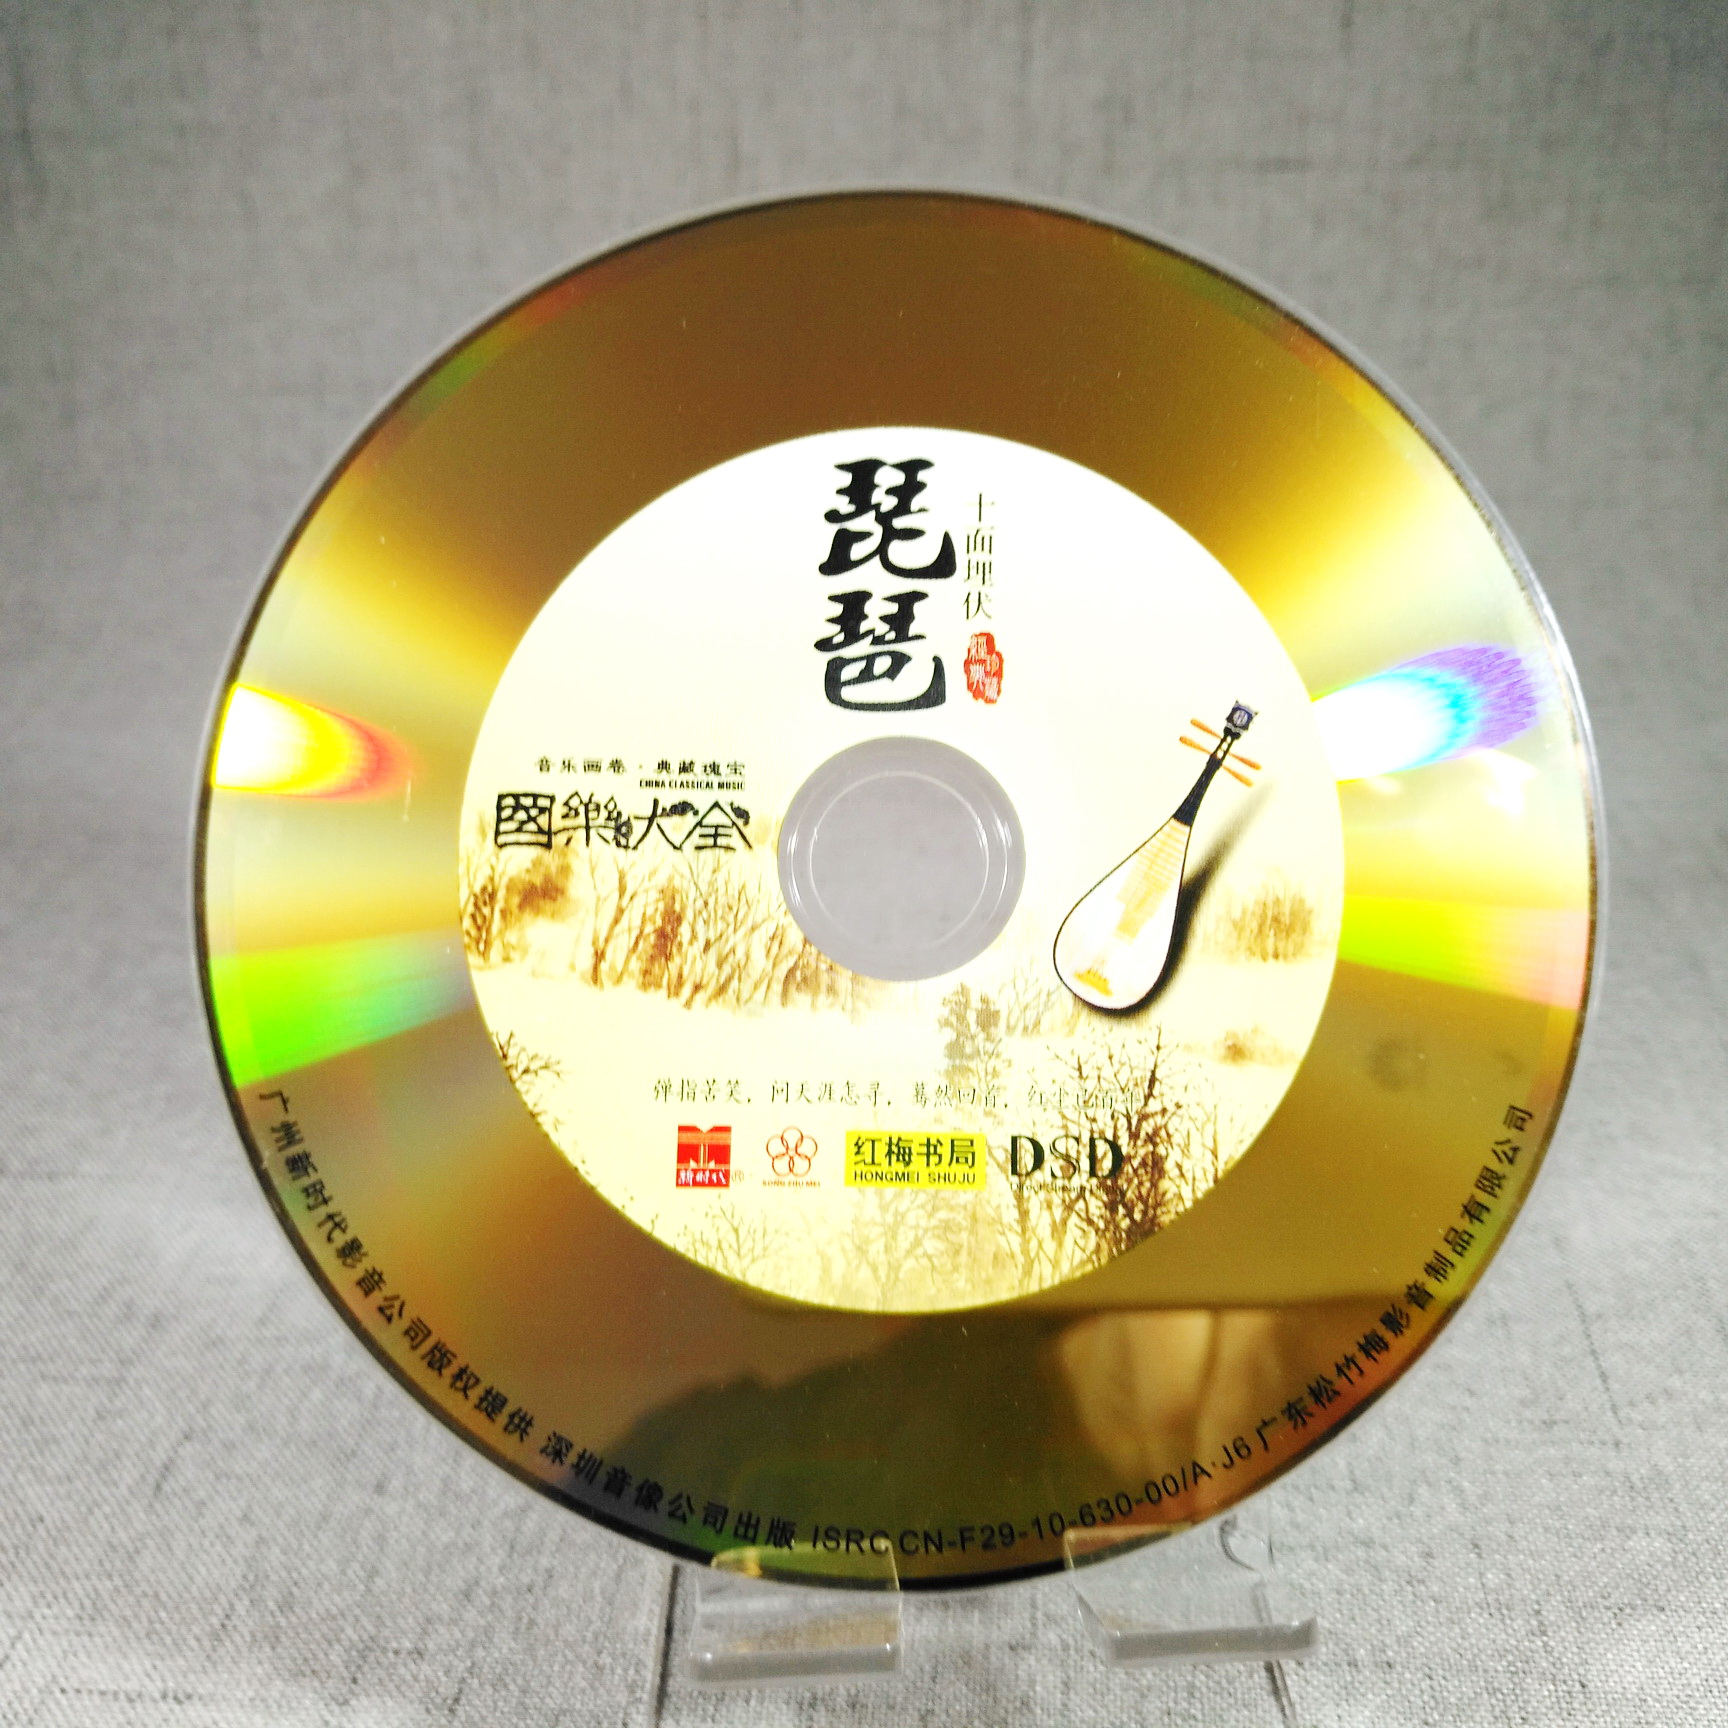 http://www.cdvdmaker.com/wp-content/uploads/2016/10/Gold-CD-Replication02.jpg